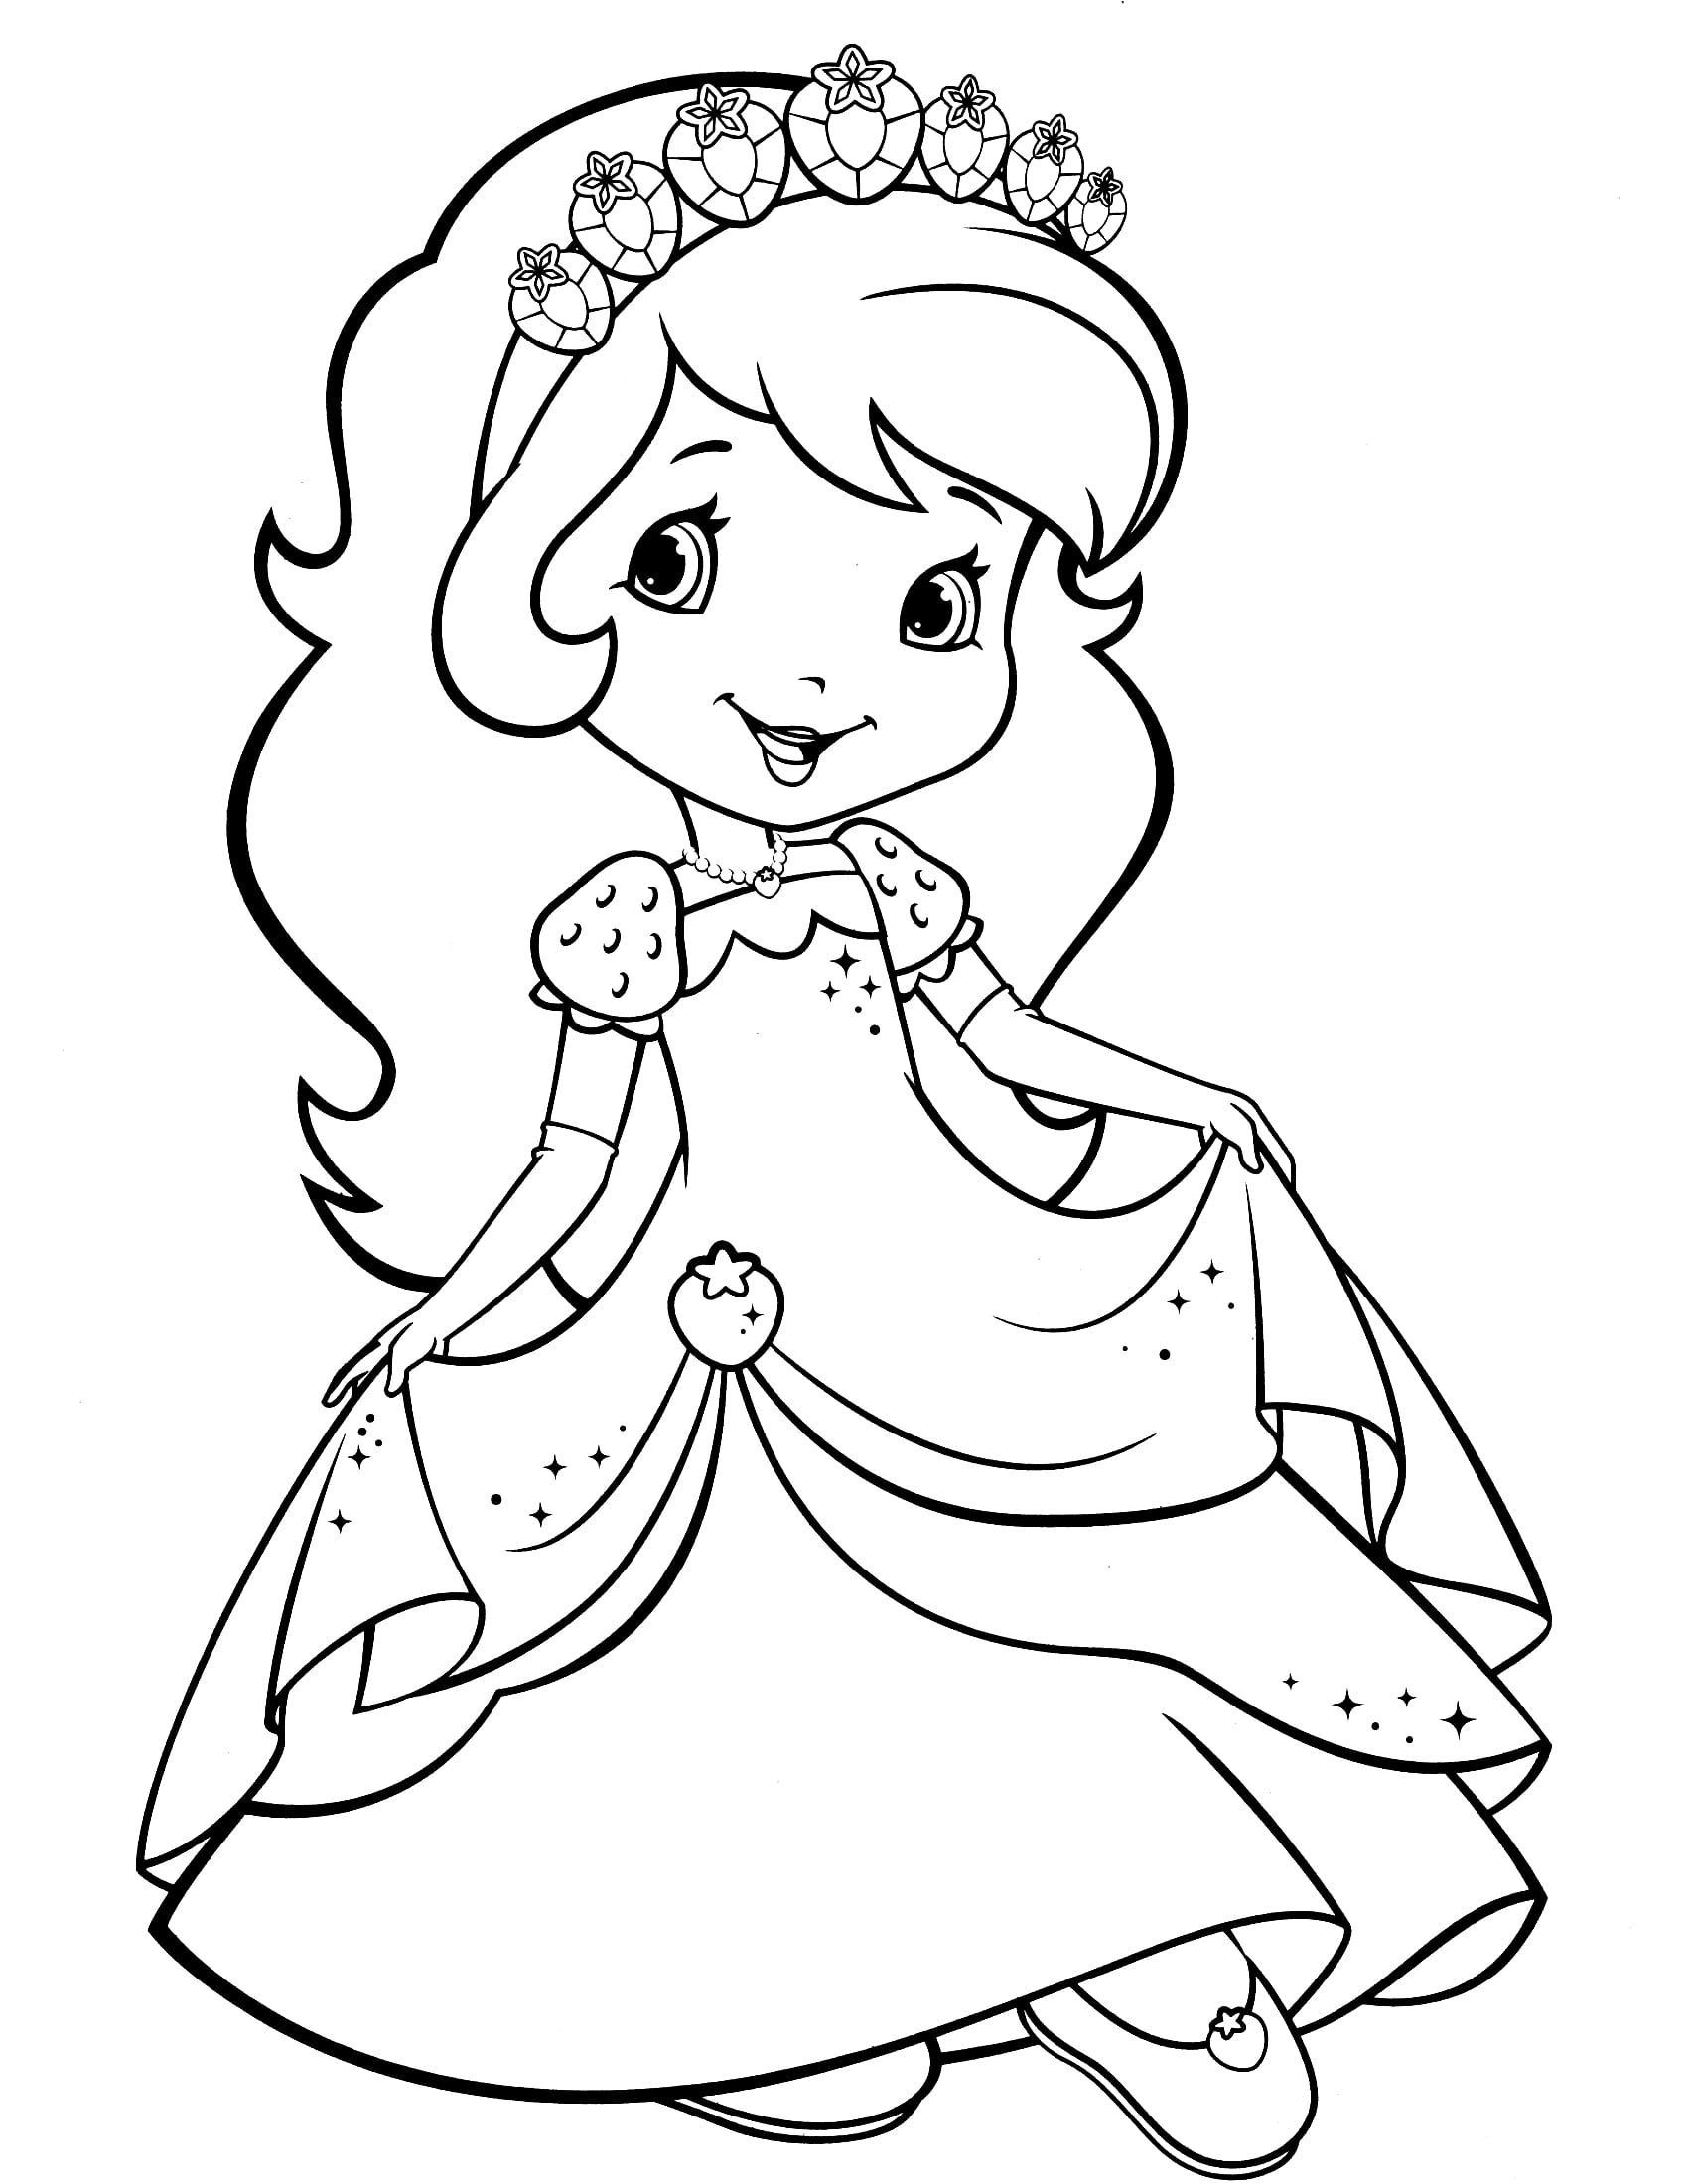 Strawberry Shortcake Coloring Pages Superb Strawberry Shortcake